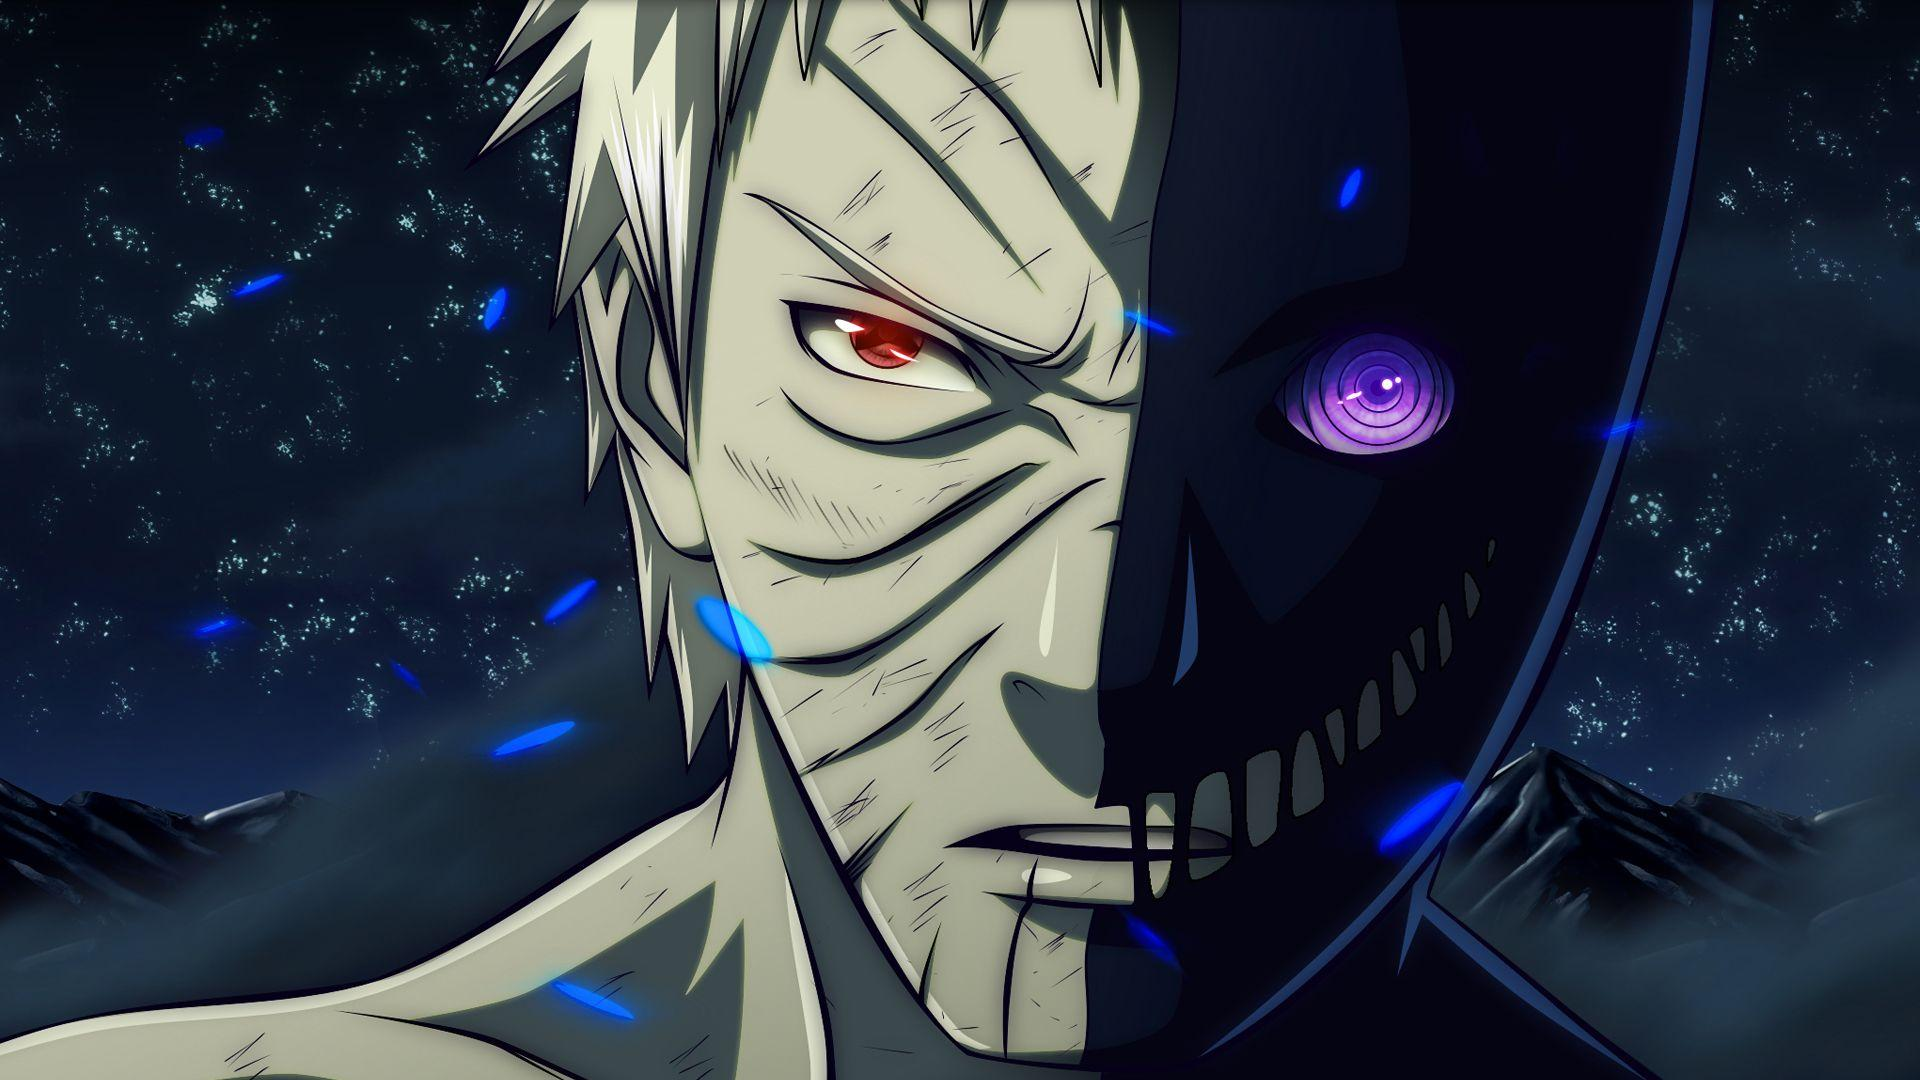 Obito No Mask Hd Wallpapers Wallpaper Cave